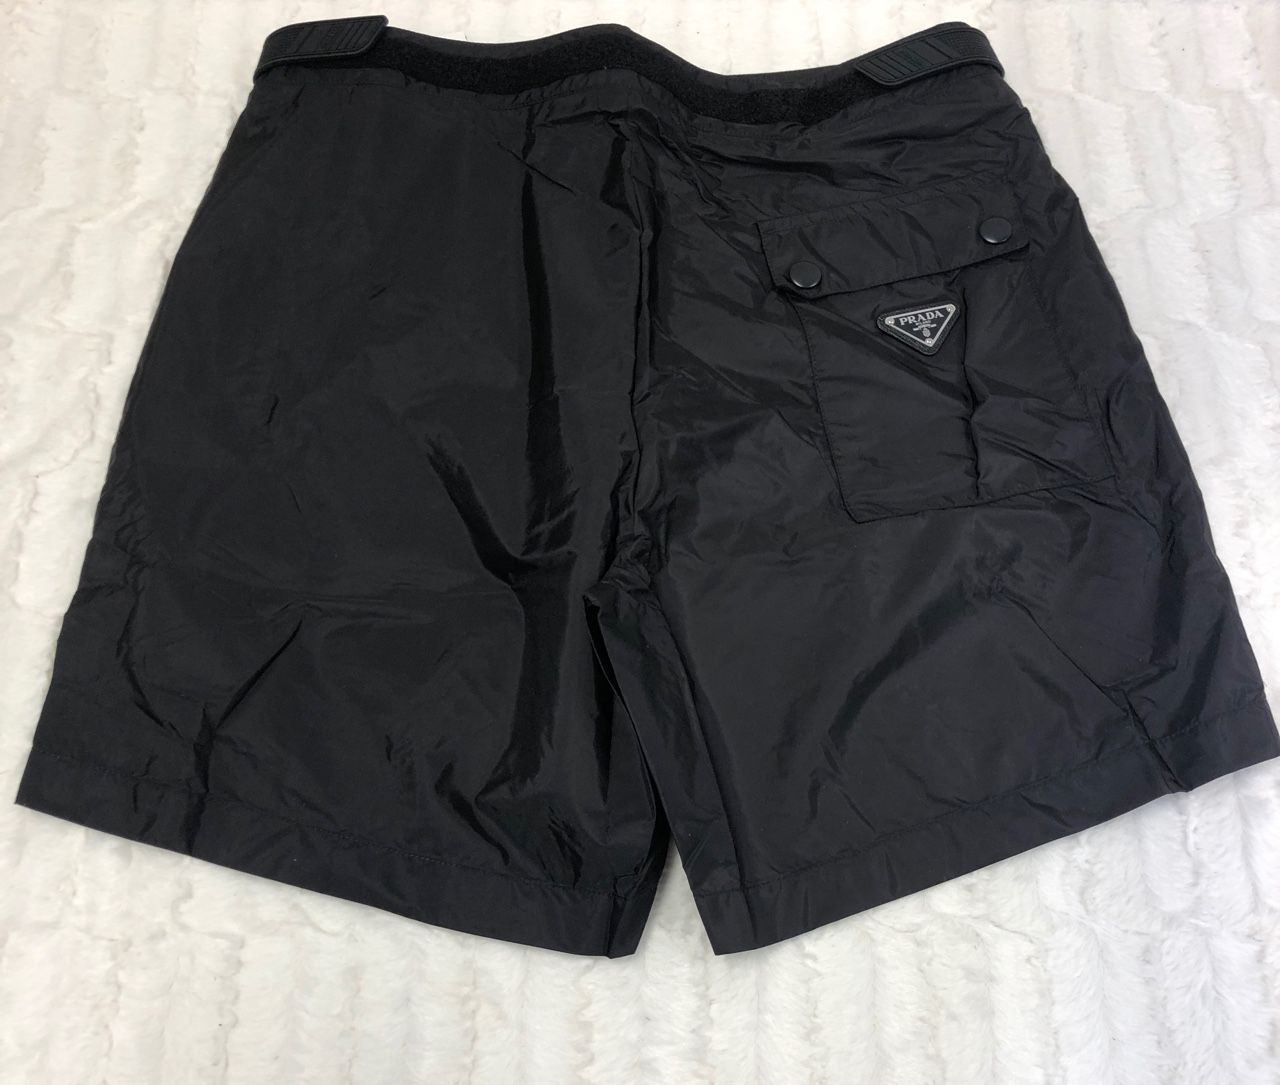 Prada Puma Slim-Fit Mid-Length Logo-Appliqued Swim Shorts Black 9679066509606534